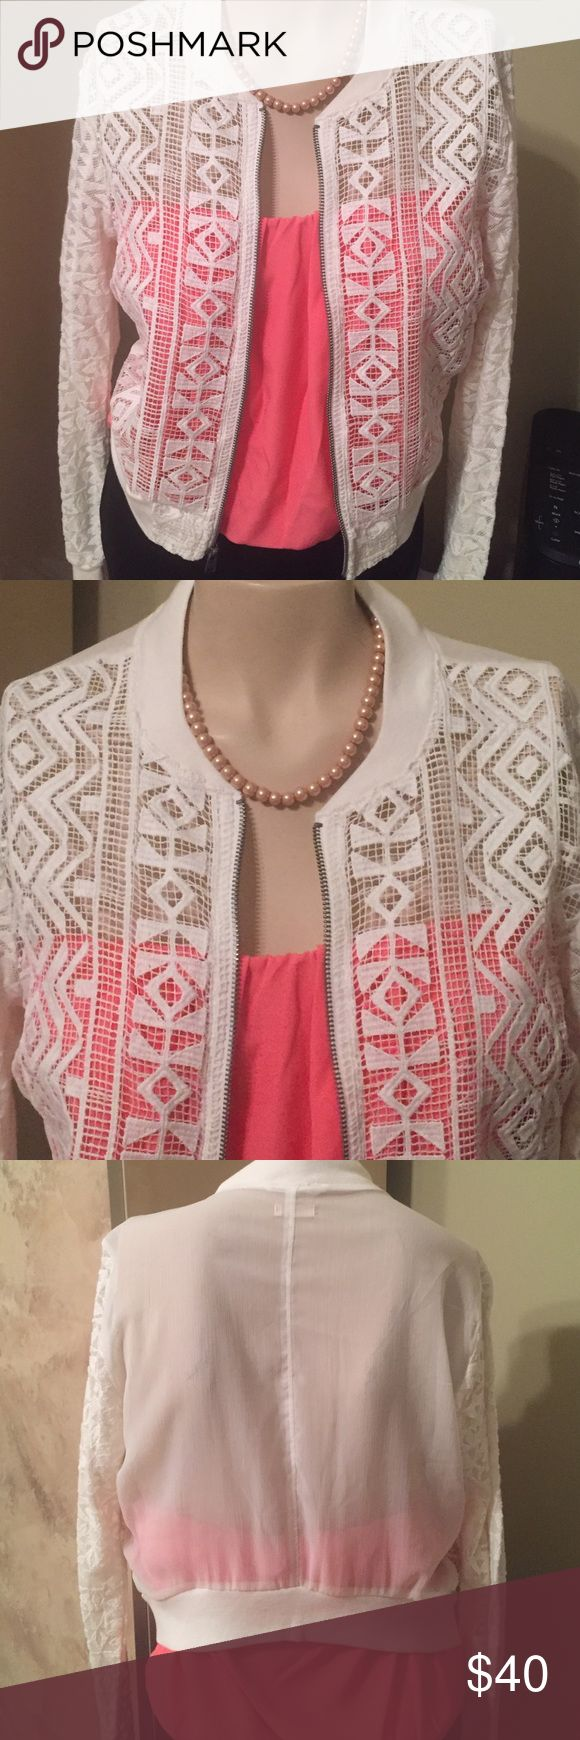 JUST IN WOMEN'S HOLLISTER CROCHET ZIP UP - S JUST IN BEAUTIFUL WOMEN'S HOLLISTER CROCHET ZIP UP JACKET SIZE S LONG SLEEVES OFFERS CONSIDEREDBUNDLE AND SAVE LOTS NEW WITHOUT TAGS  Hollister Tops Blouses